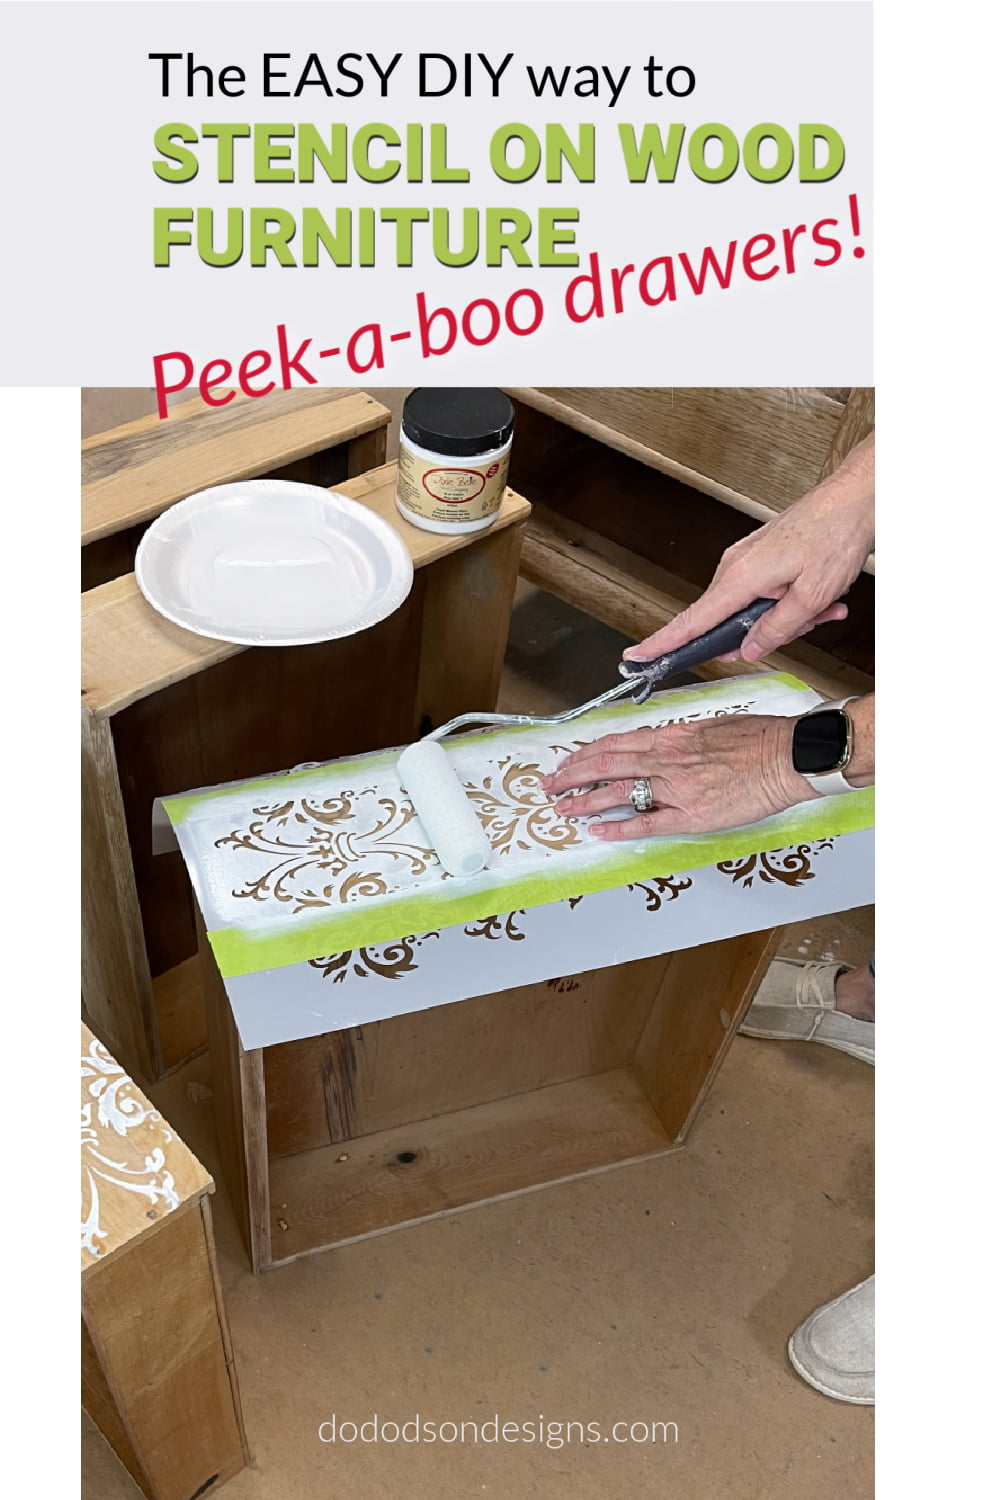 How To Stencil On Wood Furniture | Peek-a-boo Pattern